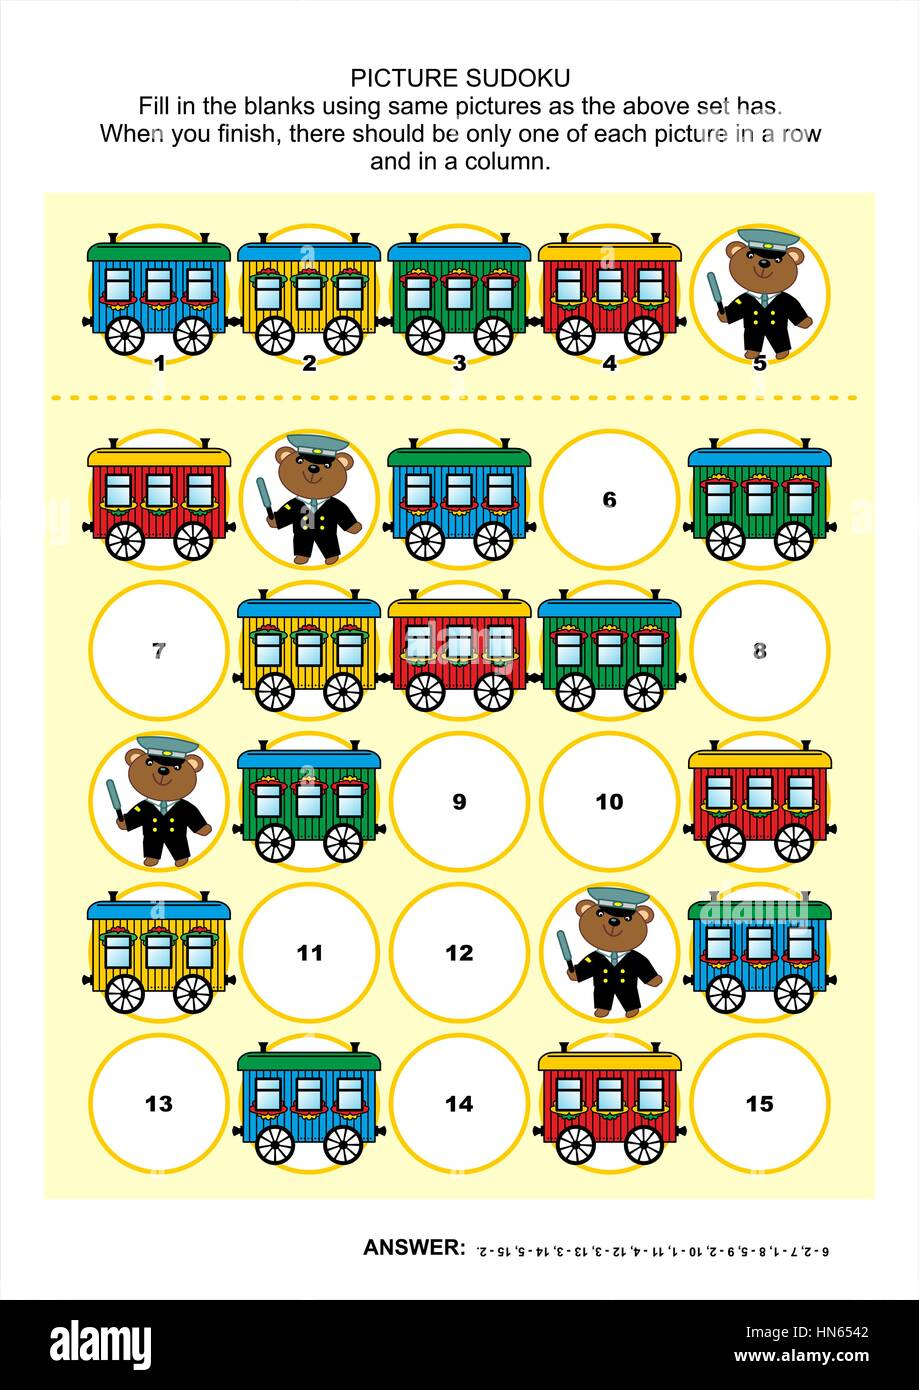 Railroad themed picture sudoku puzzle 5x5 (one block) with train ...